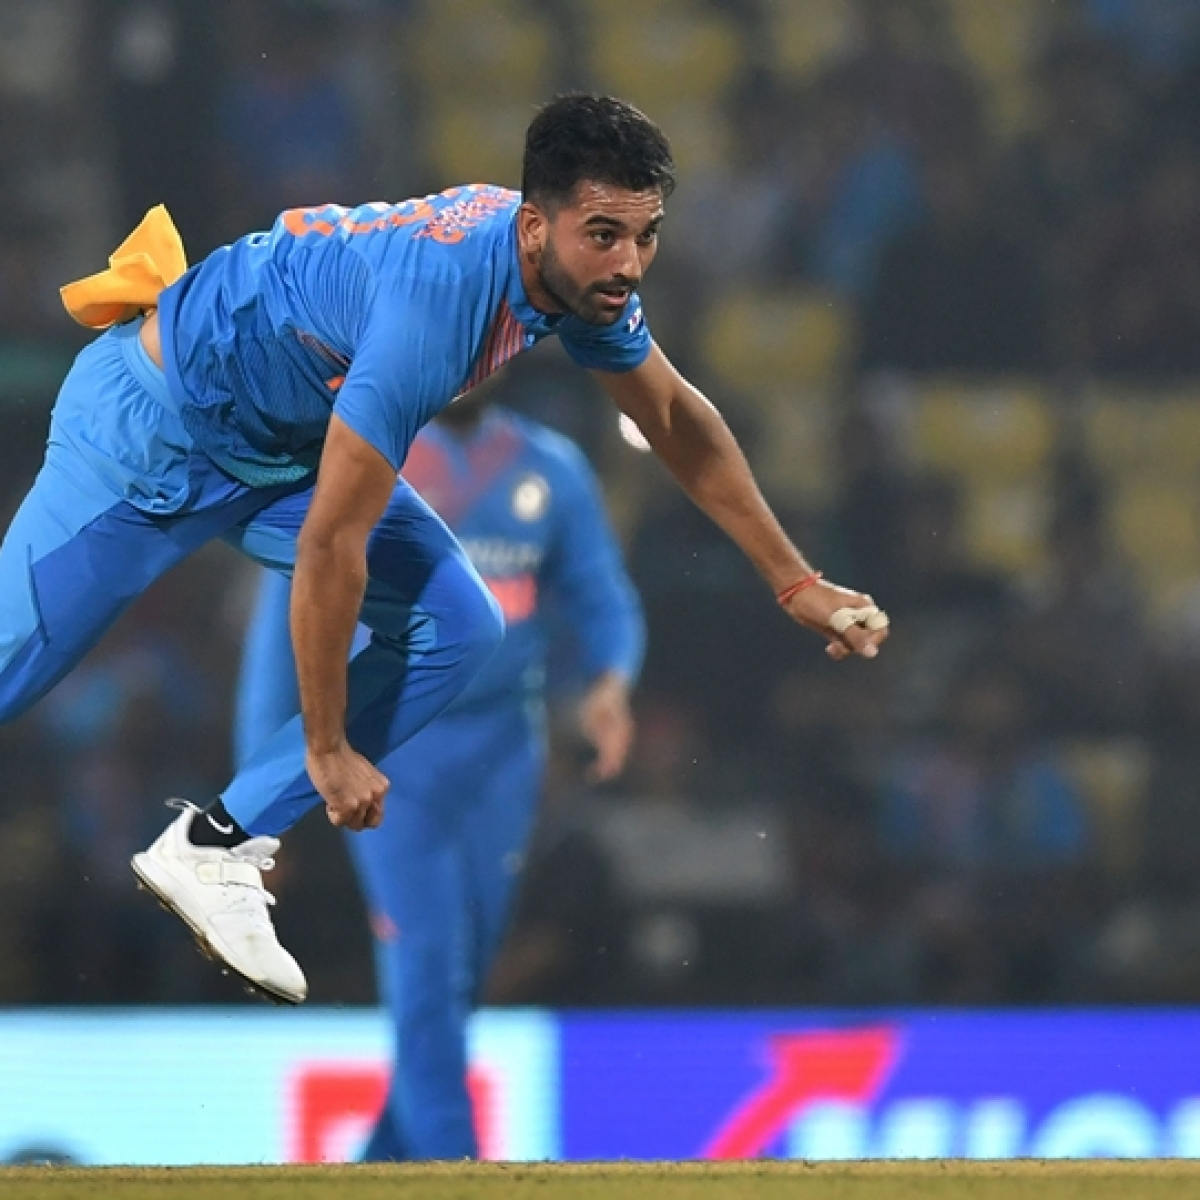 Mayank Mishra claims 3-in-3, Deepak Chahar gets 3-in-4